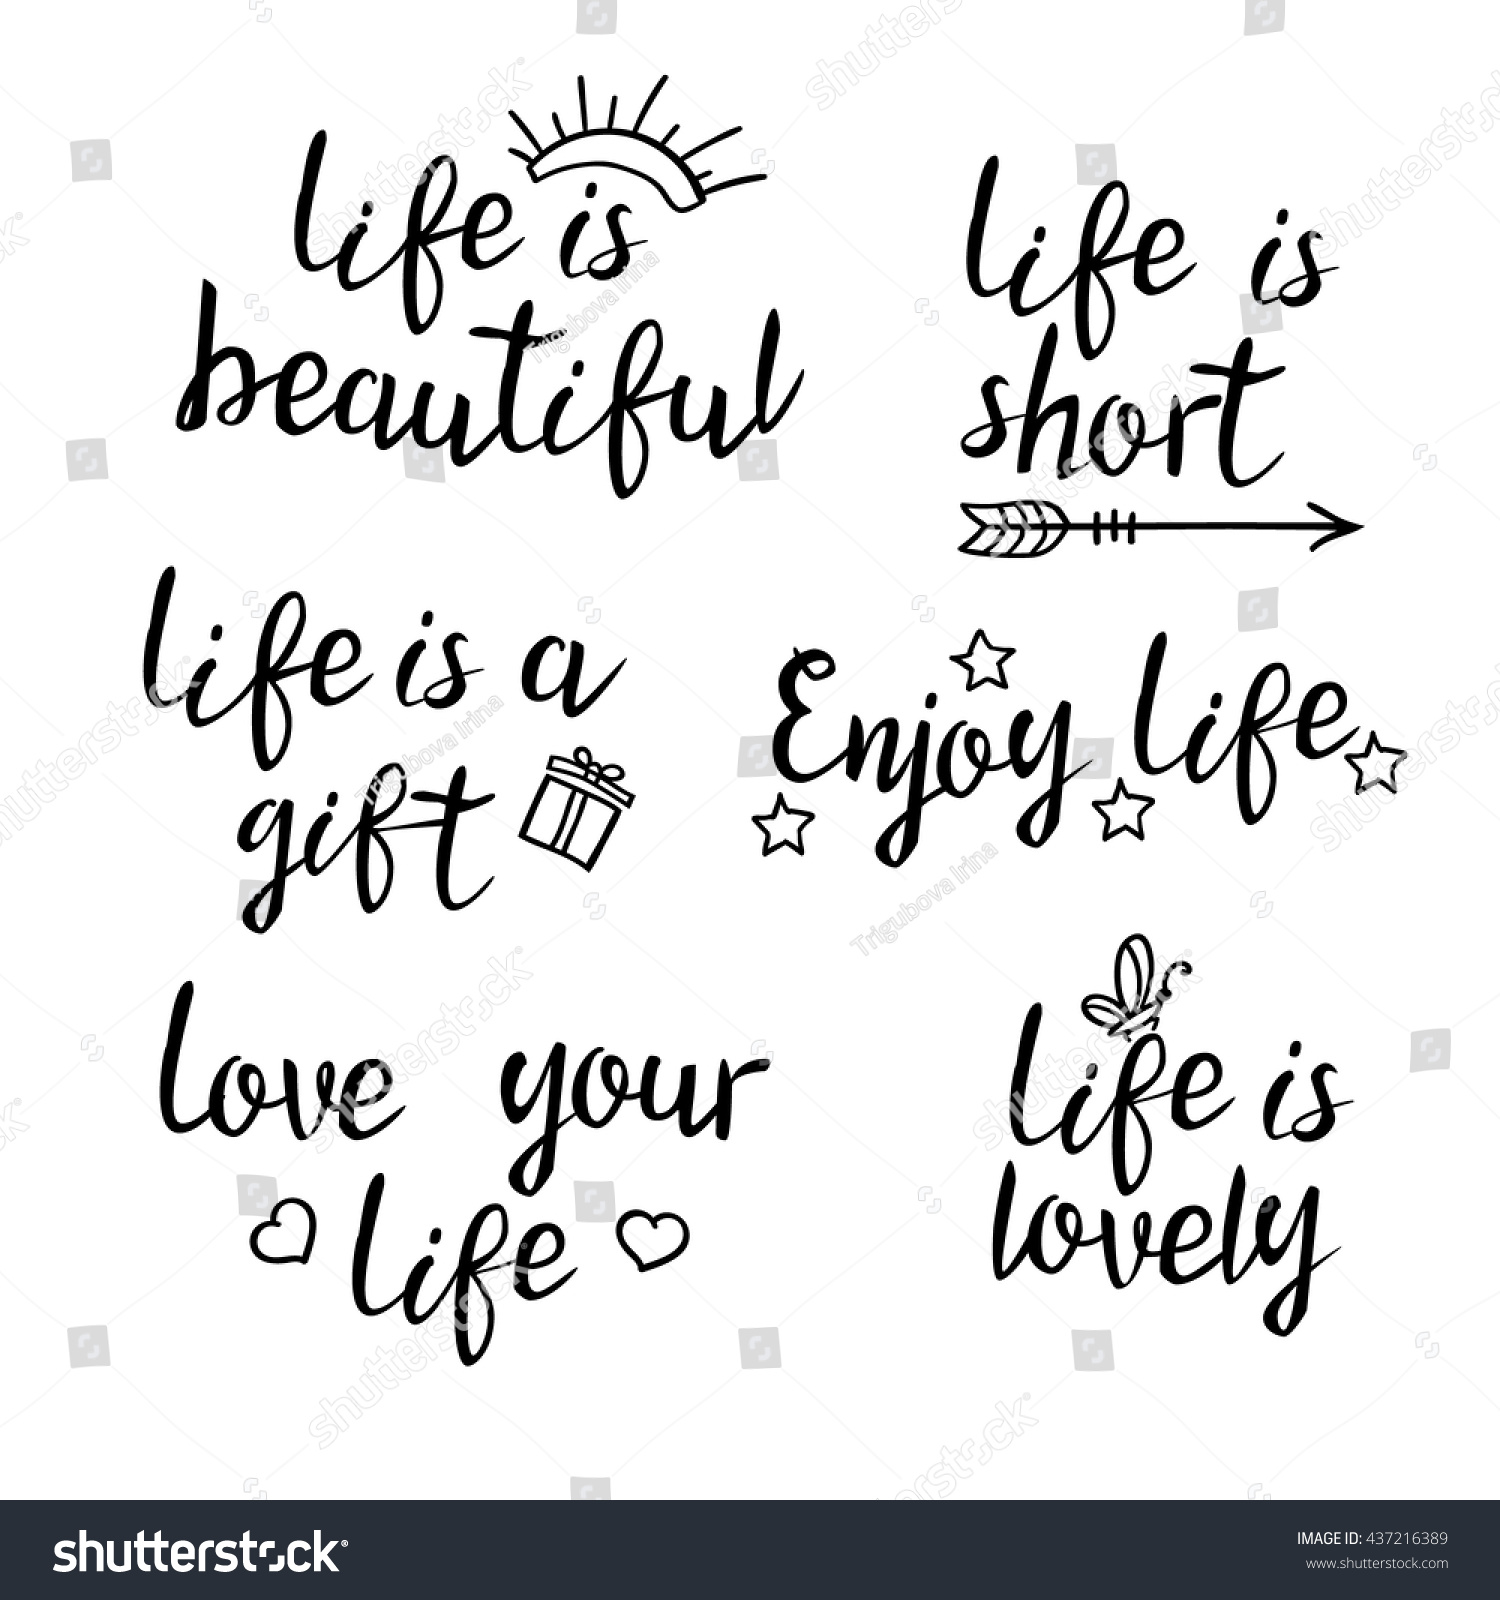 Life Quotecom Lettering Life Quotes Calligraphy Inspirational Quote Stock Vector